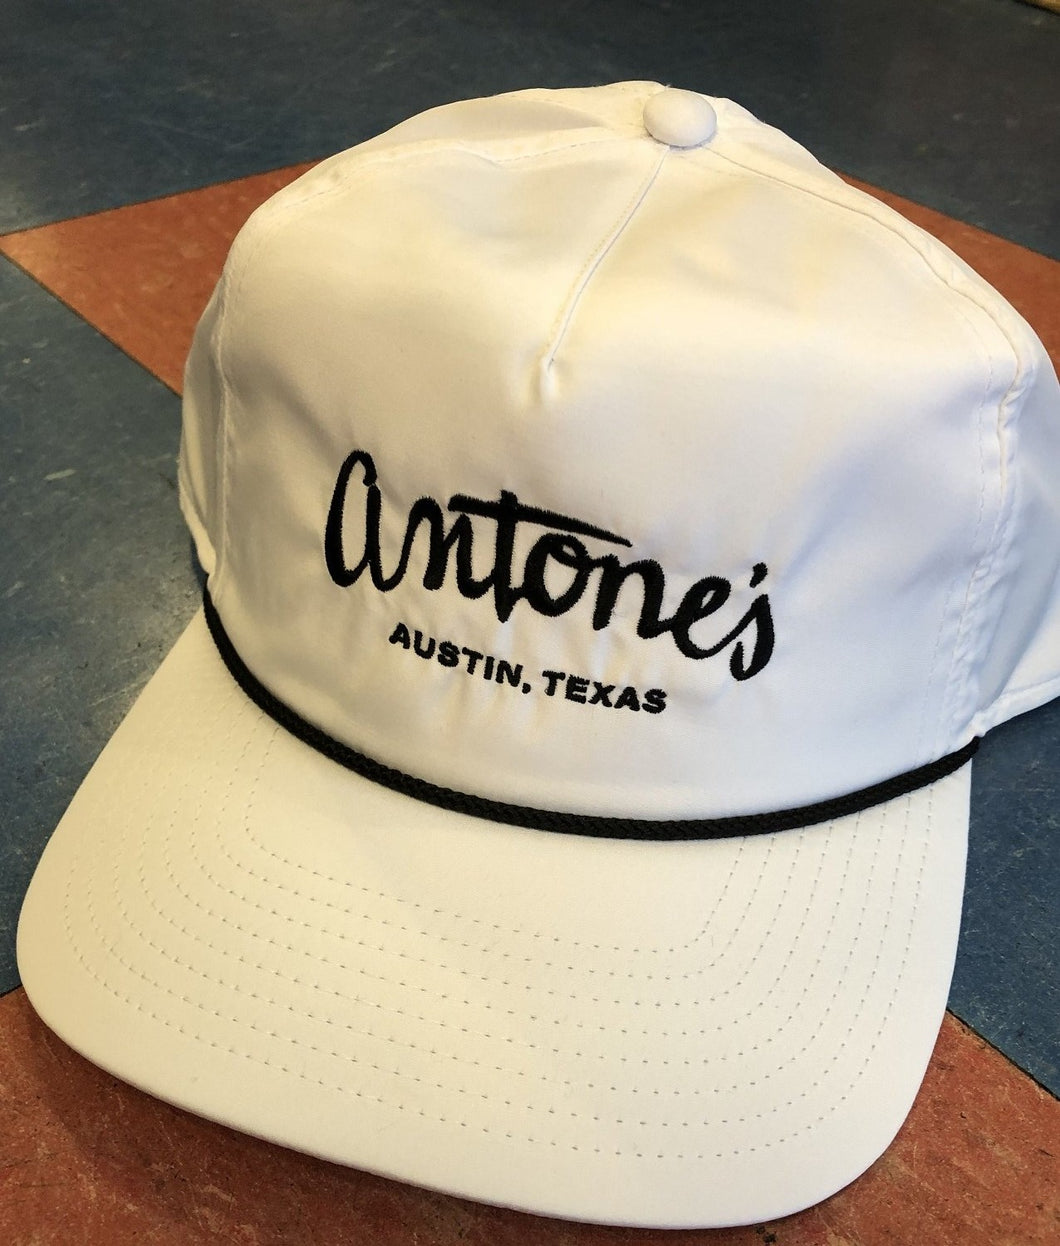 Antone's Hat - White - Miscellaneous